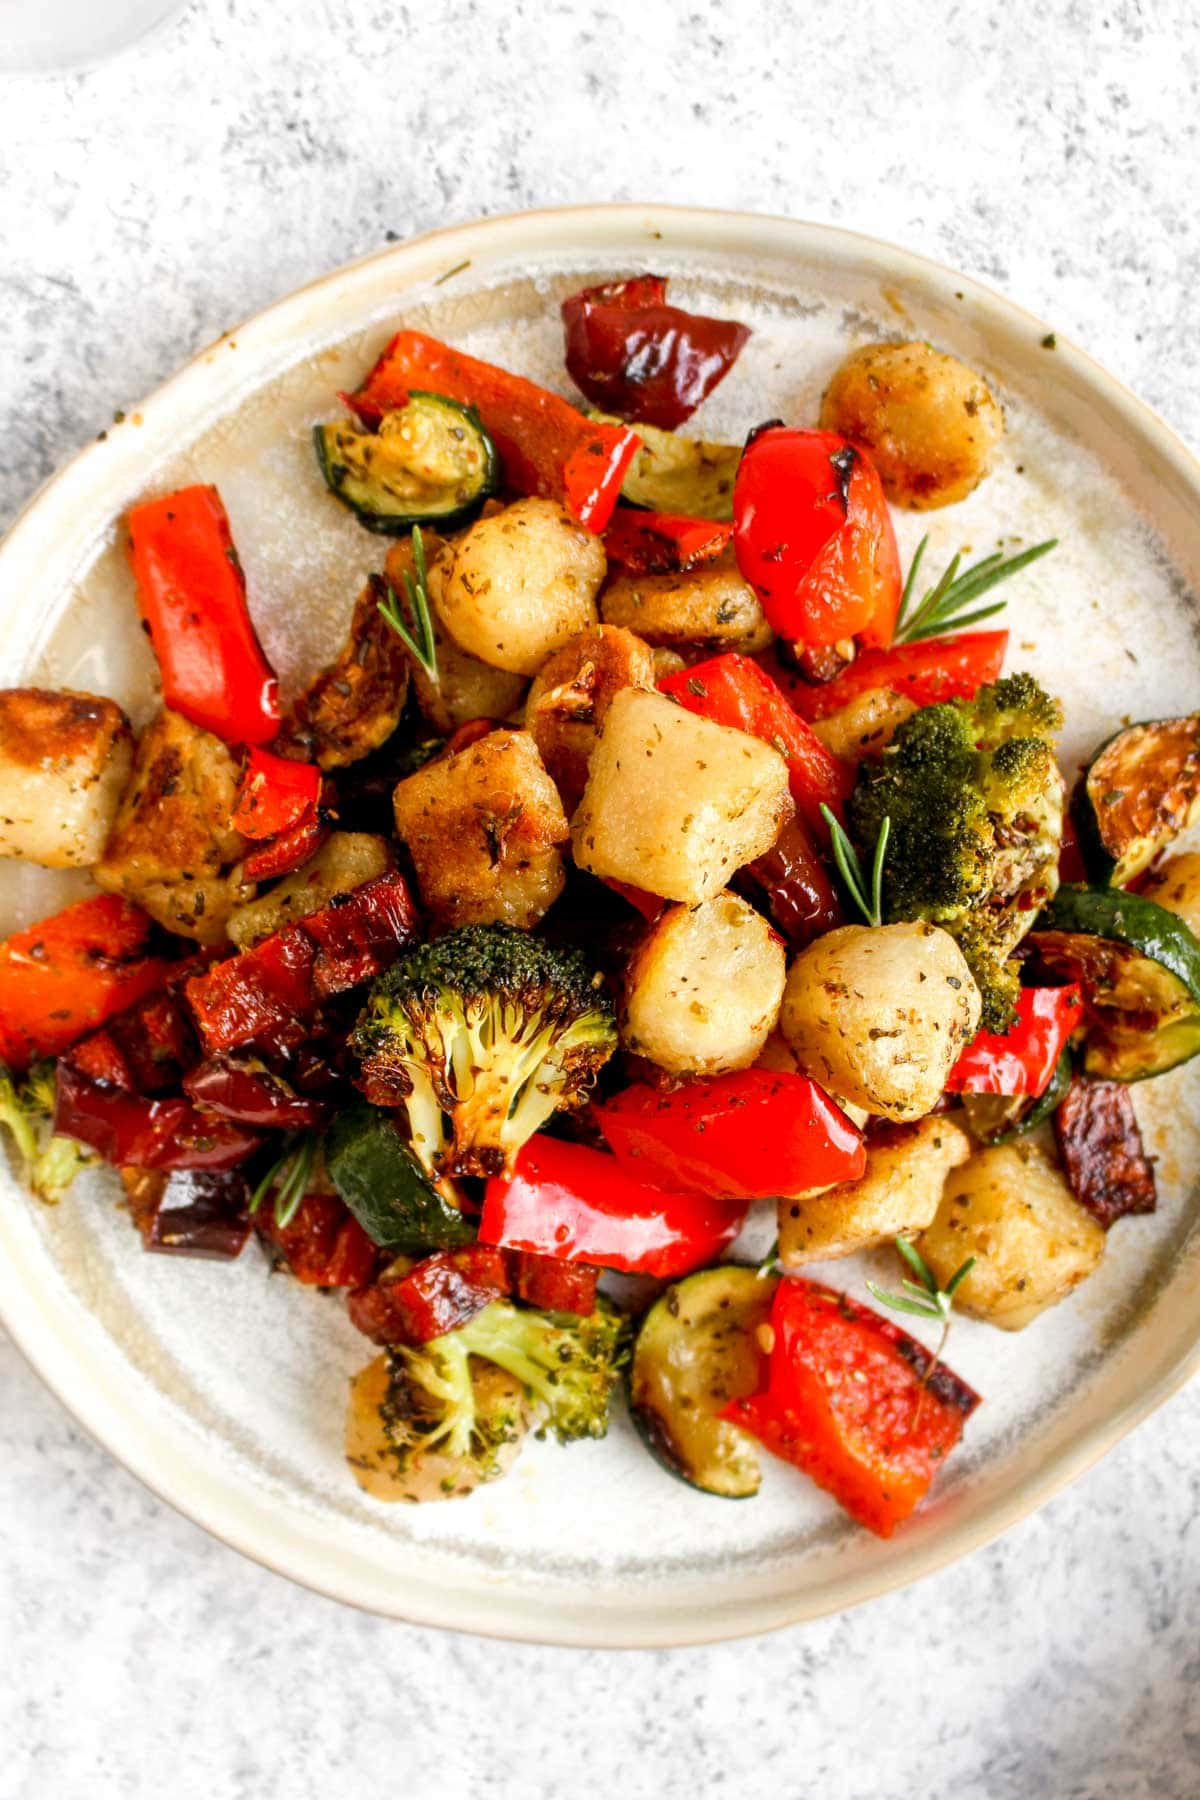 Cauliflower gnocchi sheet pan dinner on a plate with veggies and red pepper flakes.